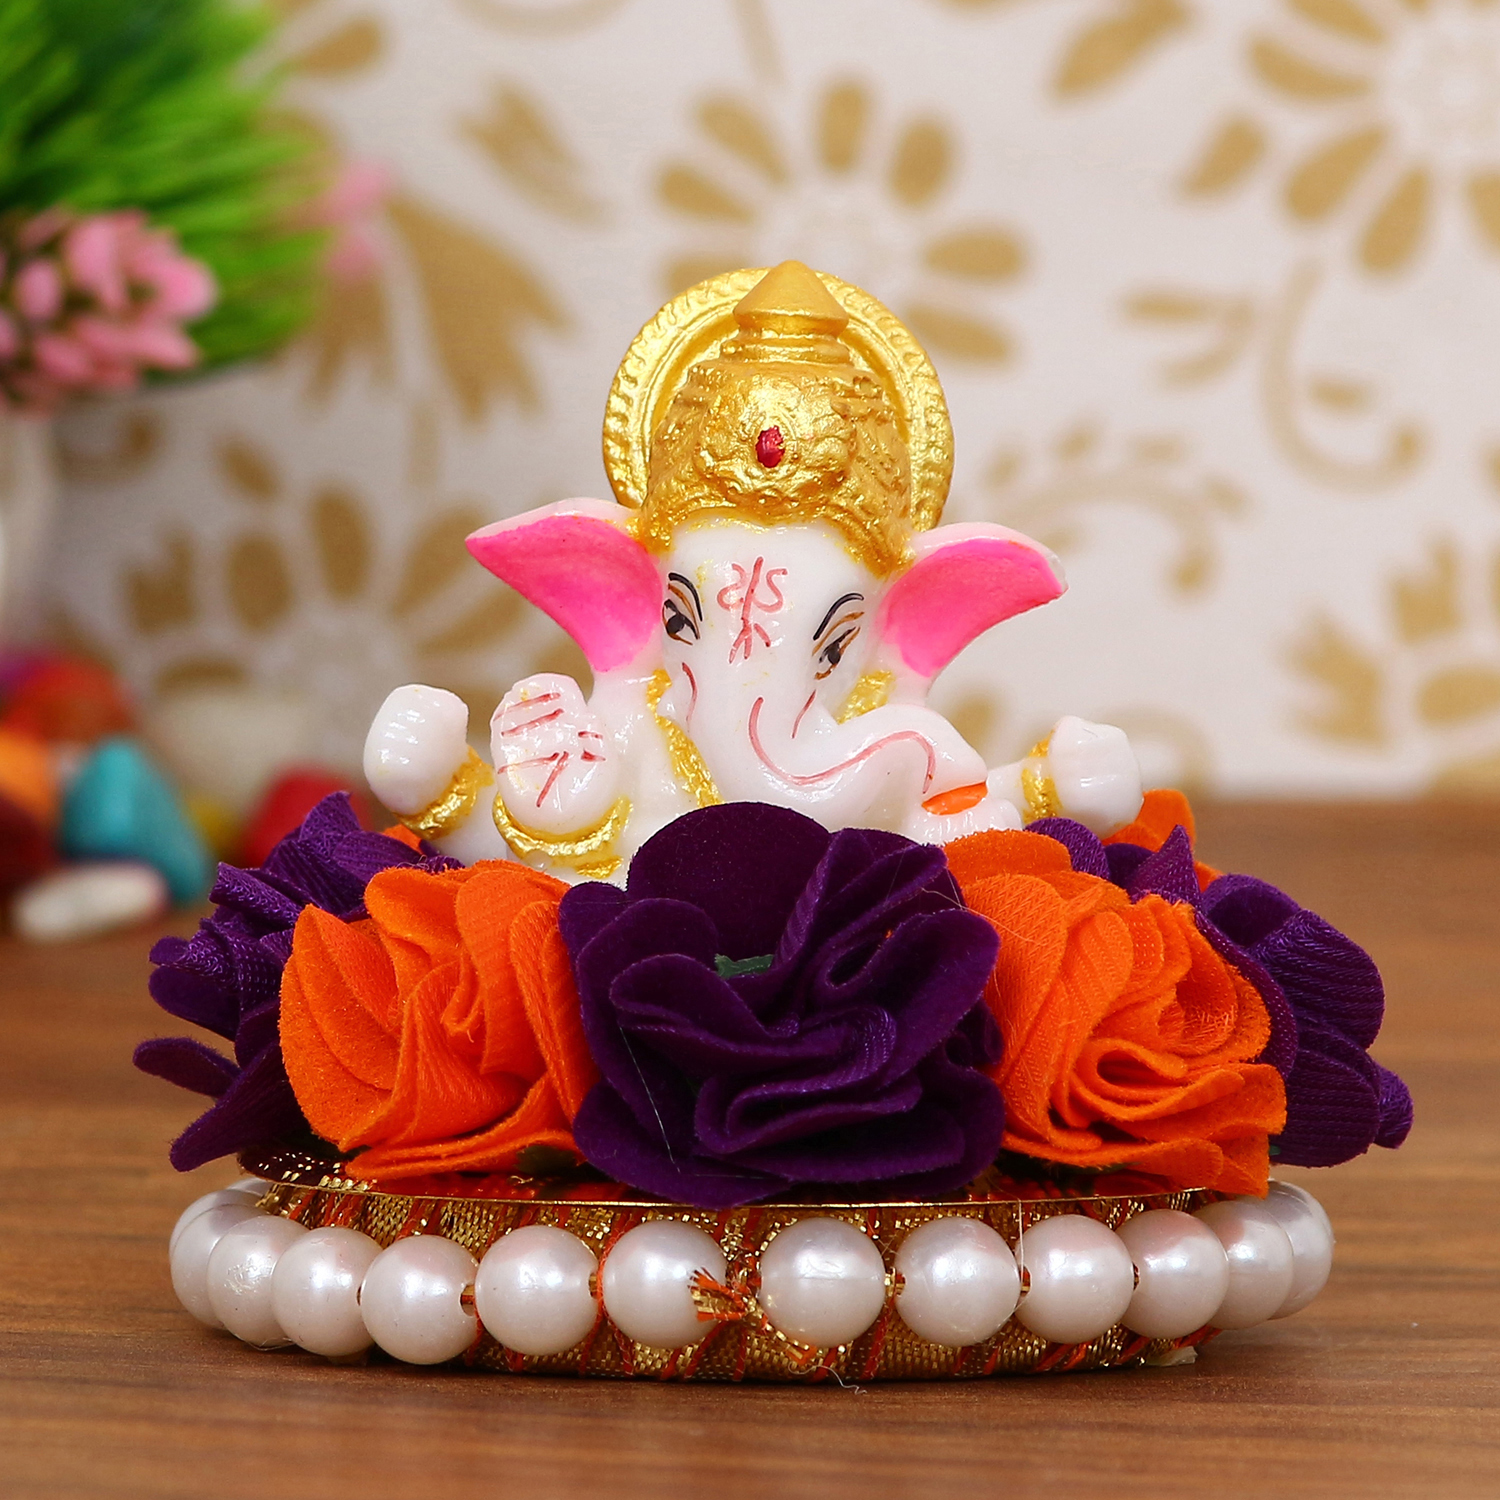 Lord Ganesha Idol on Decorative Handcrafted Plate with Orange and Purple Flowers Indian Home Decor